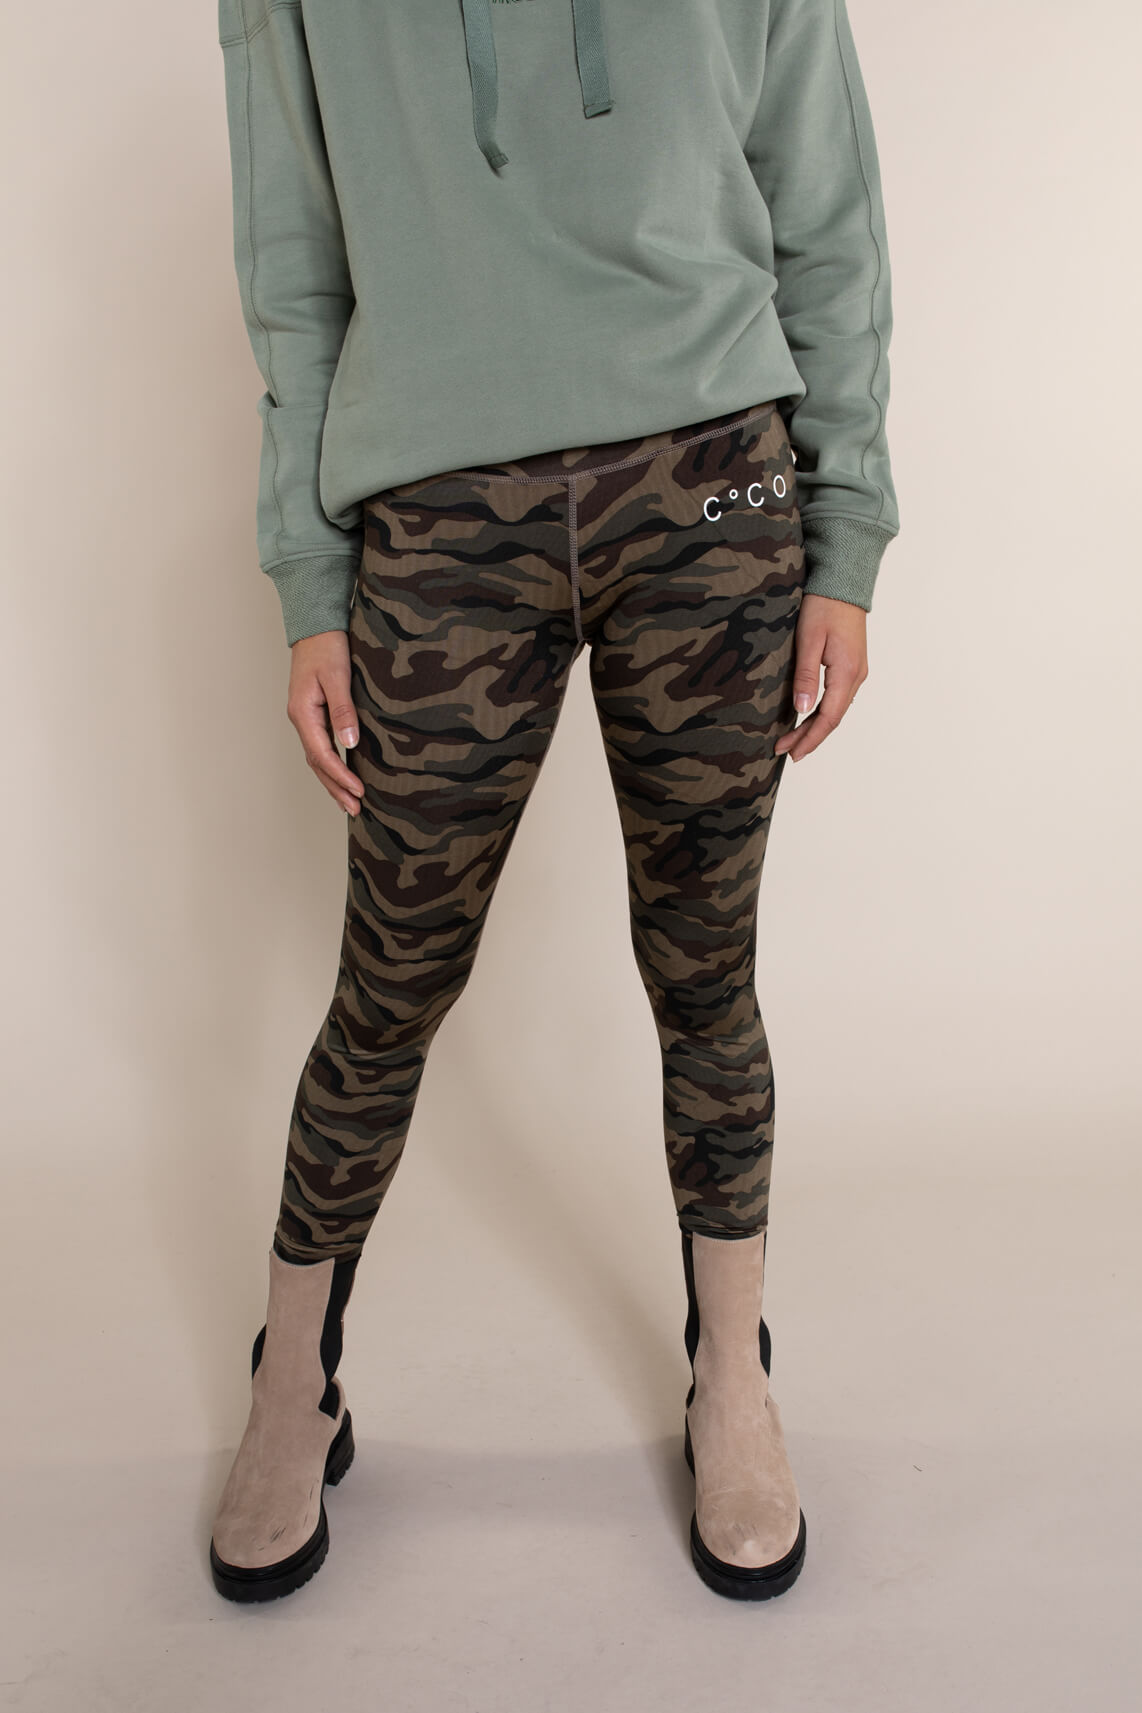 Co Couture Dames Camouflage legging groen